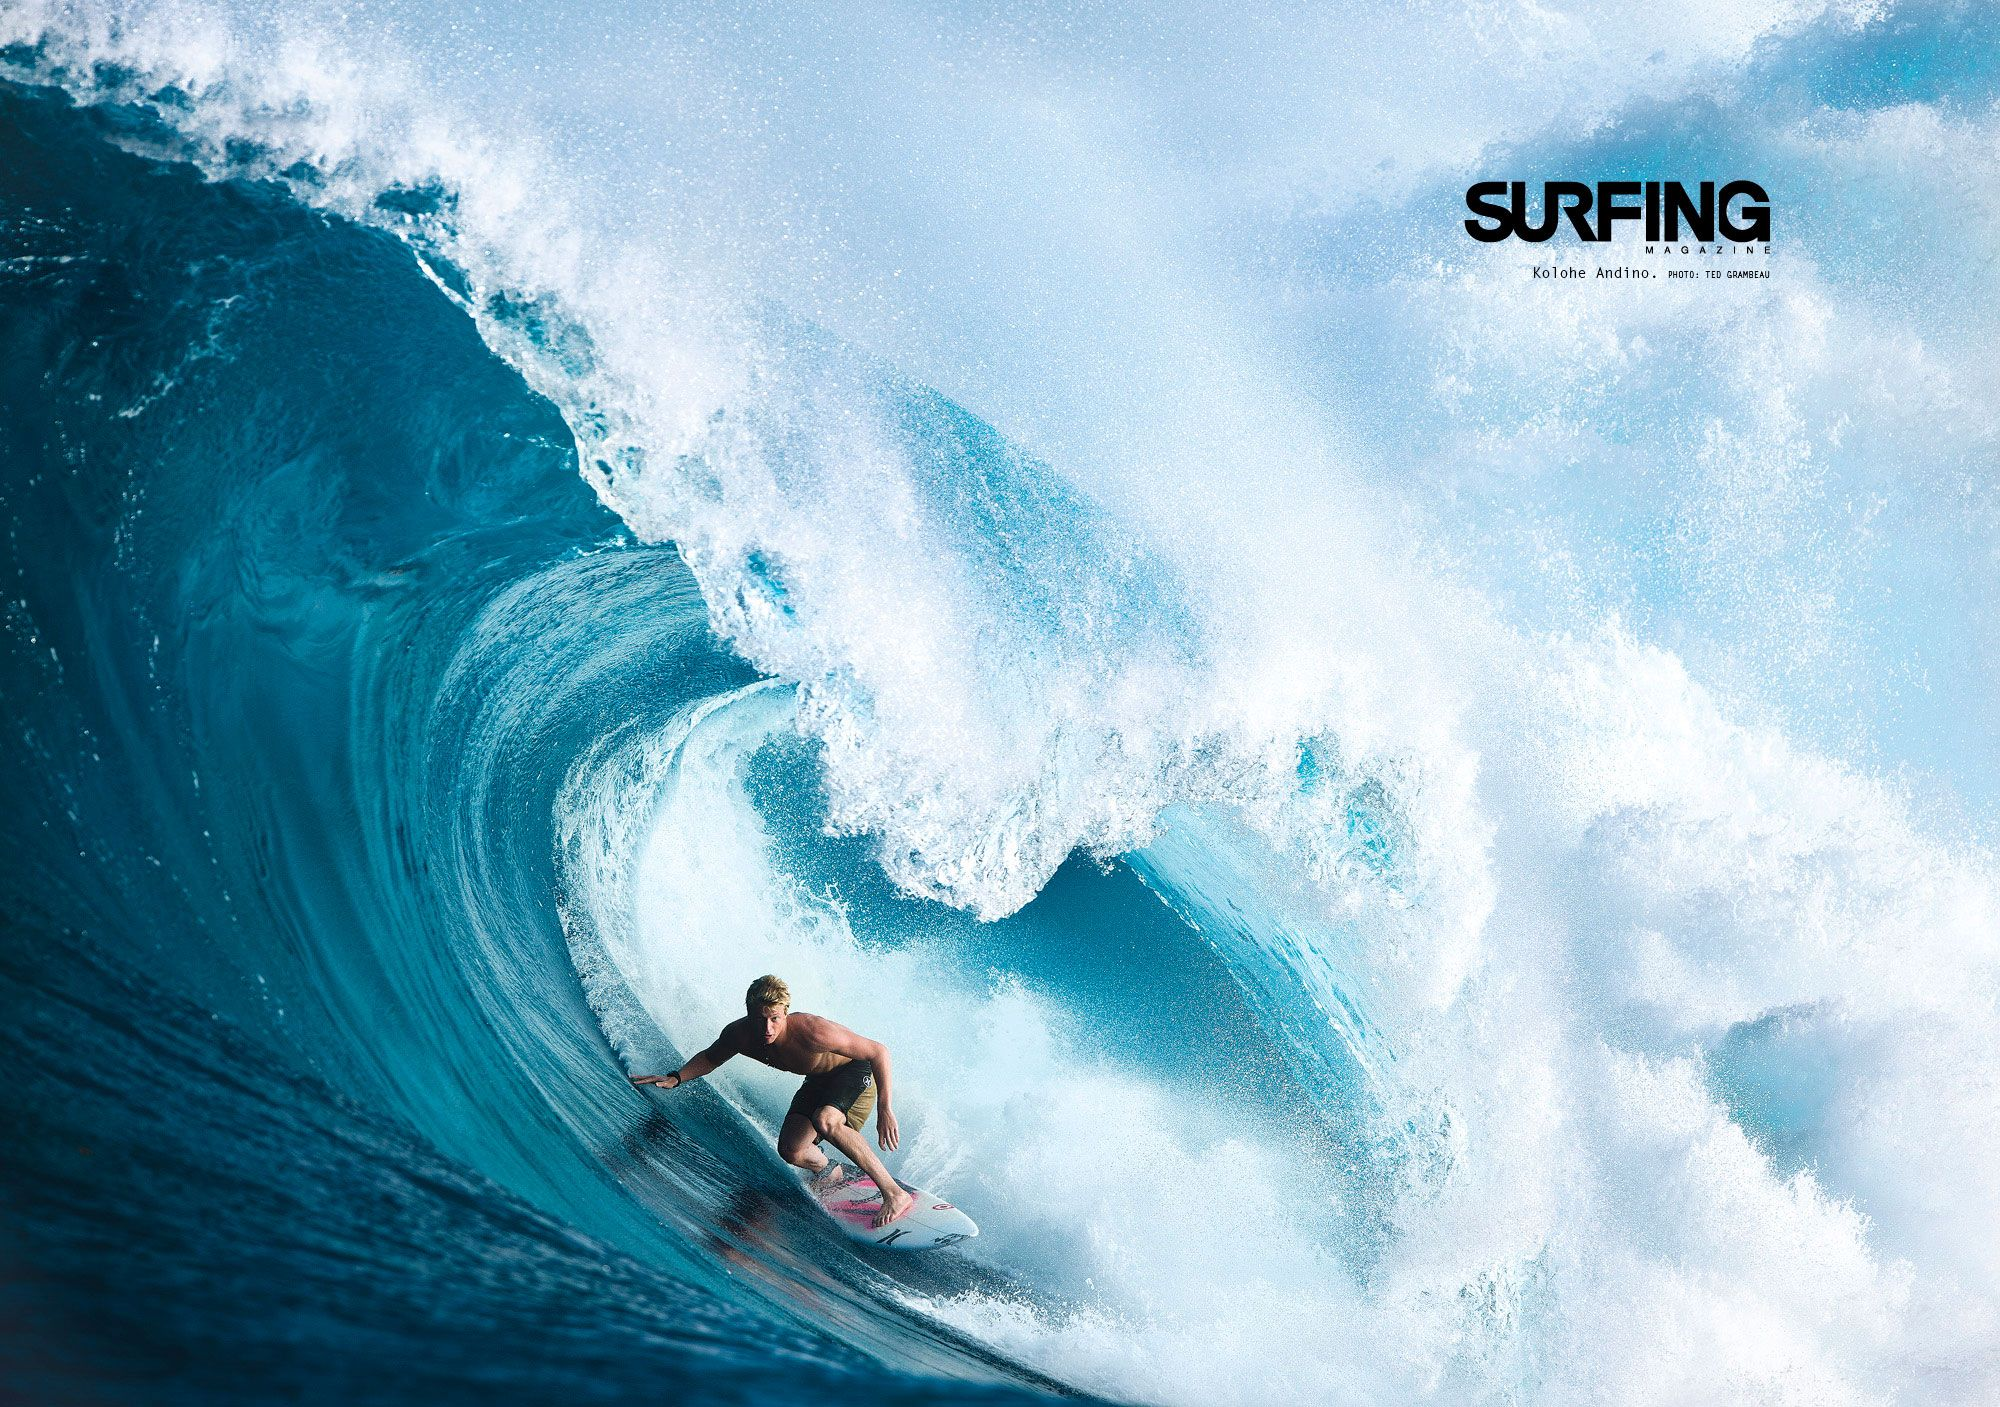 Surfboard Wallpaper wallpapers Pinterest Wallpaper Surf and